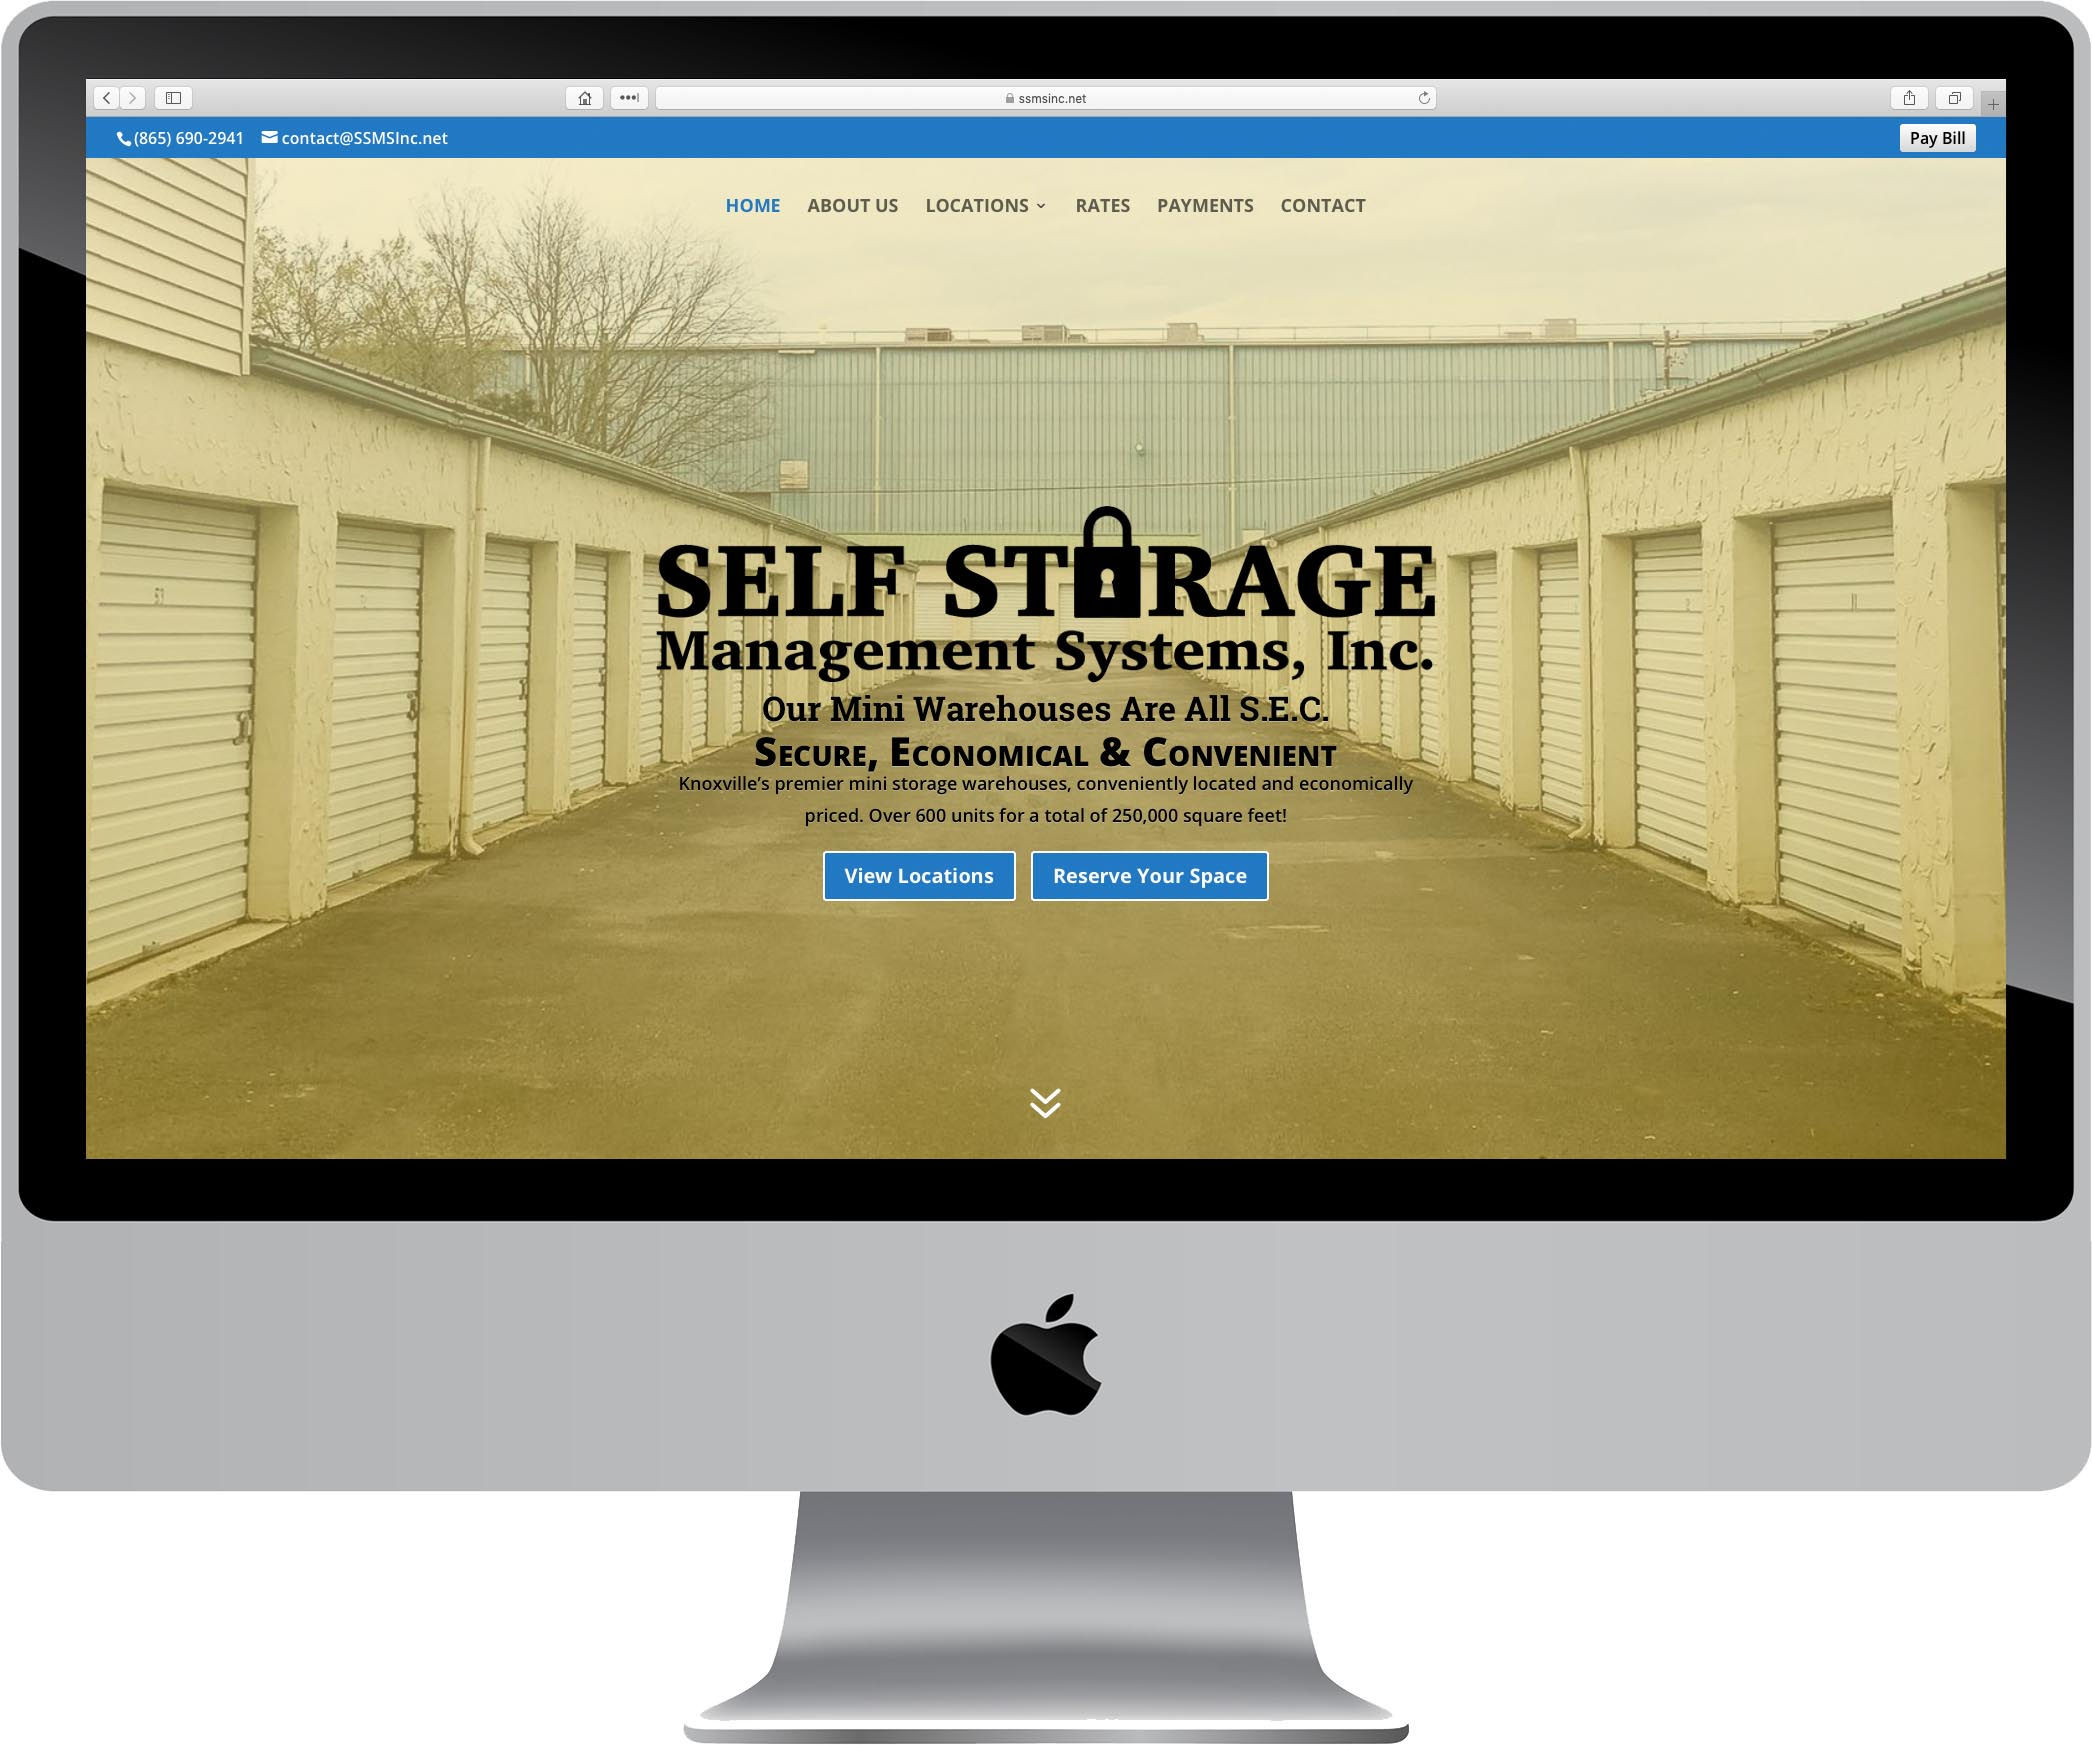 Self Storage Management Systems Website Design